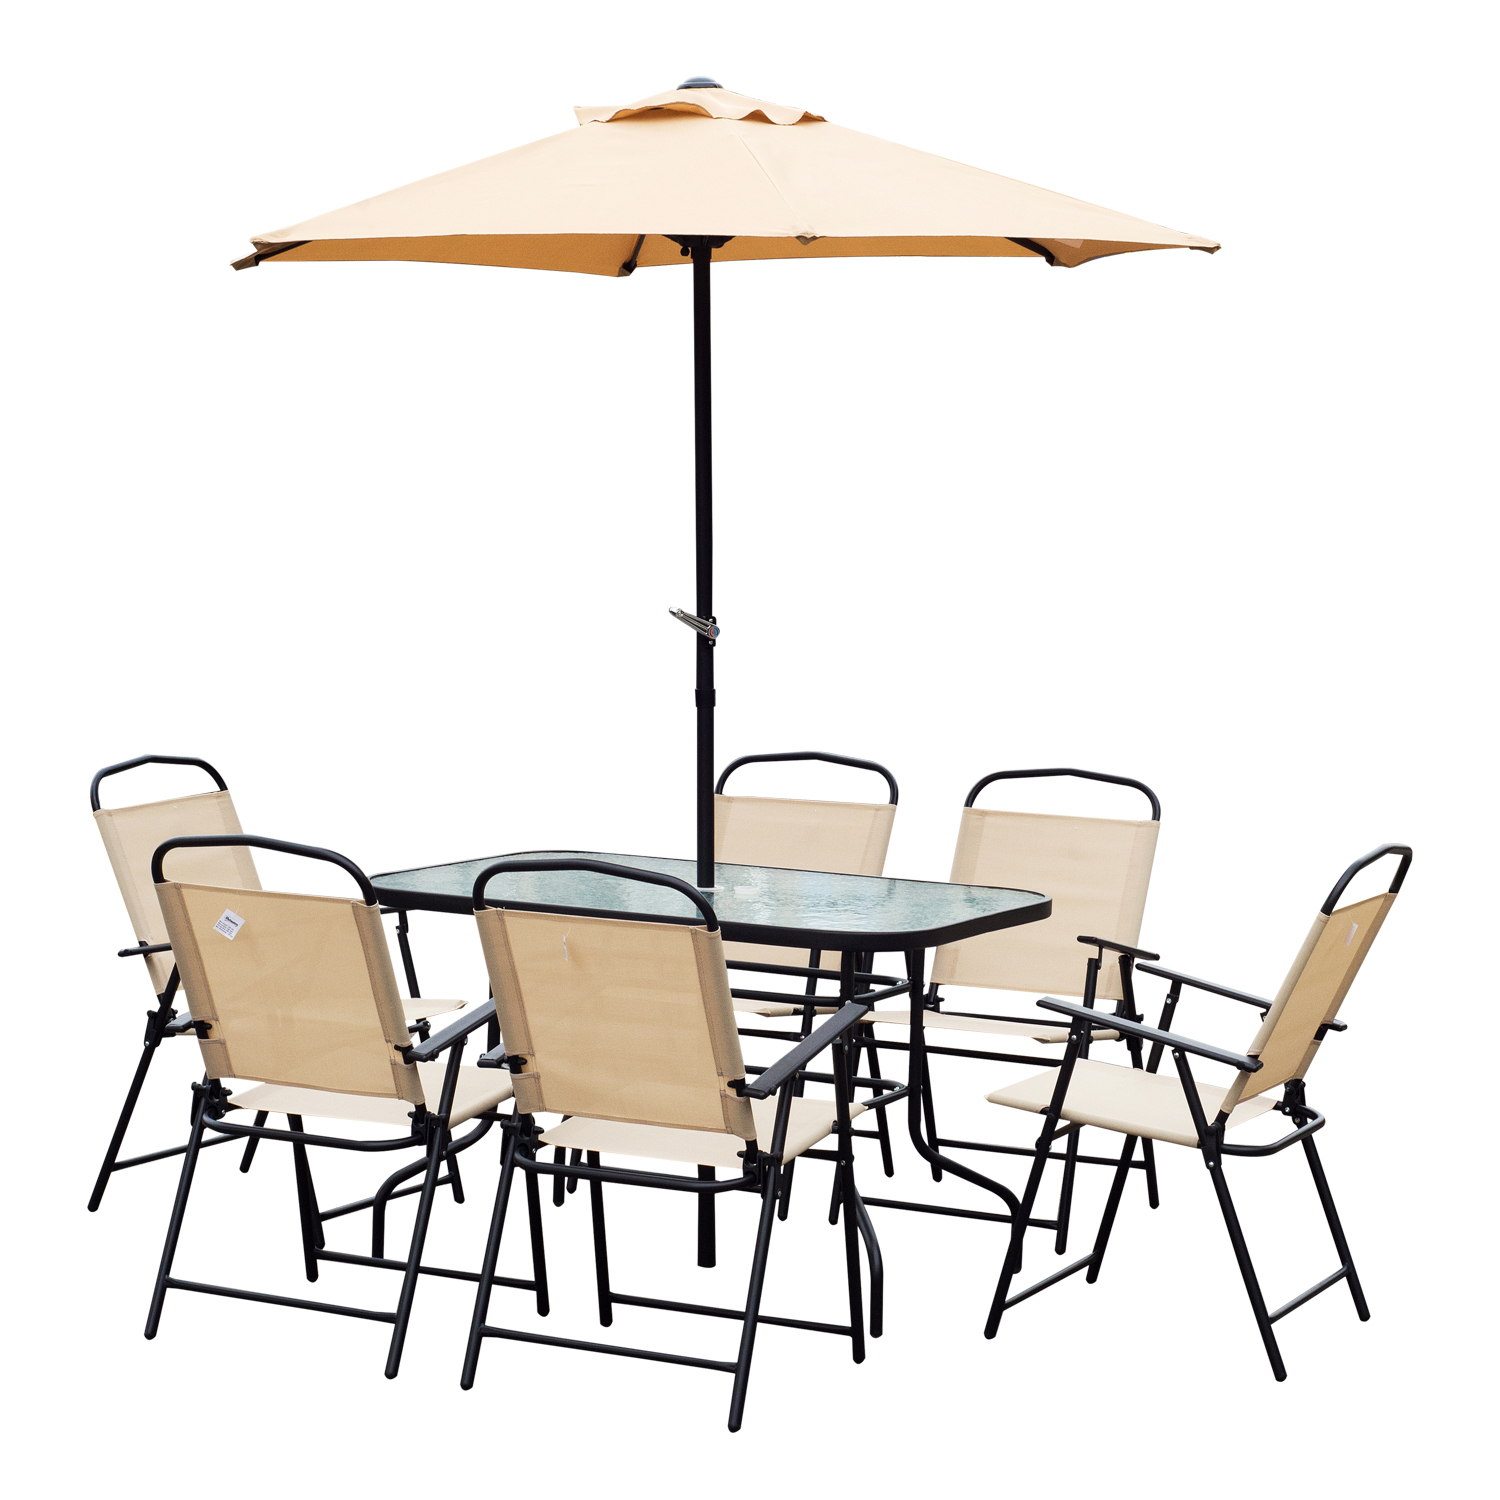 Image of £159.99 Outsunny 8 Pcs Dining Set W/Umbrella, Textilene-Beige / PC Garden 6 Seater Outdoor Patio Furniture with Glass Top Coffee Table Textilene Folding Chairs and 2M Sun Parasol Pieces Foldable Chair Umbrella Beige 84B-191 5056029886854